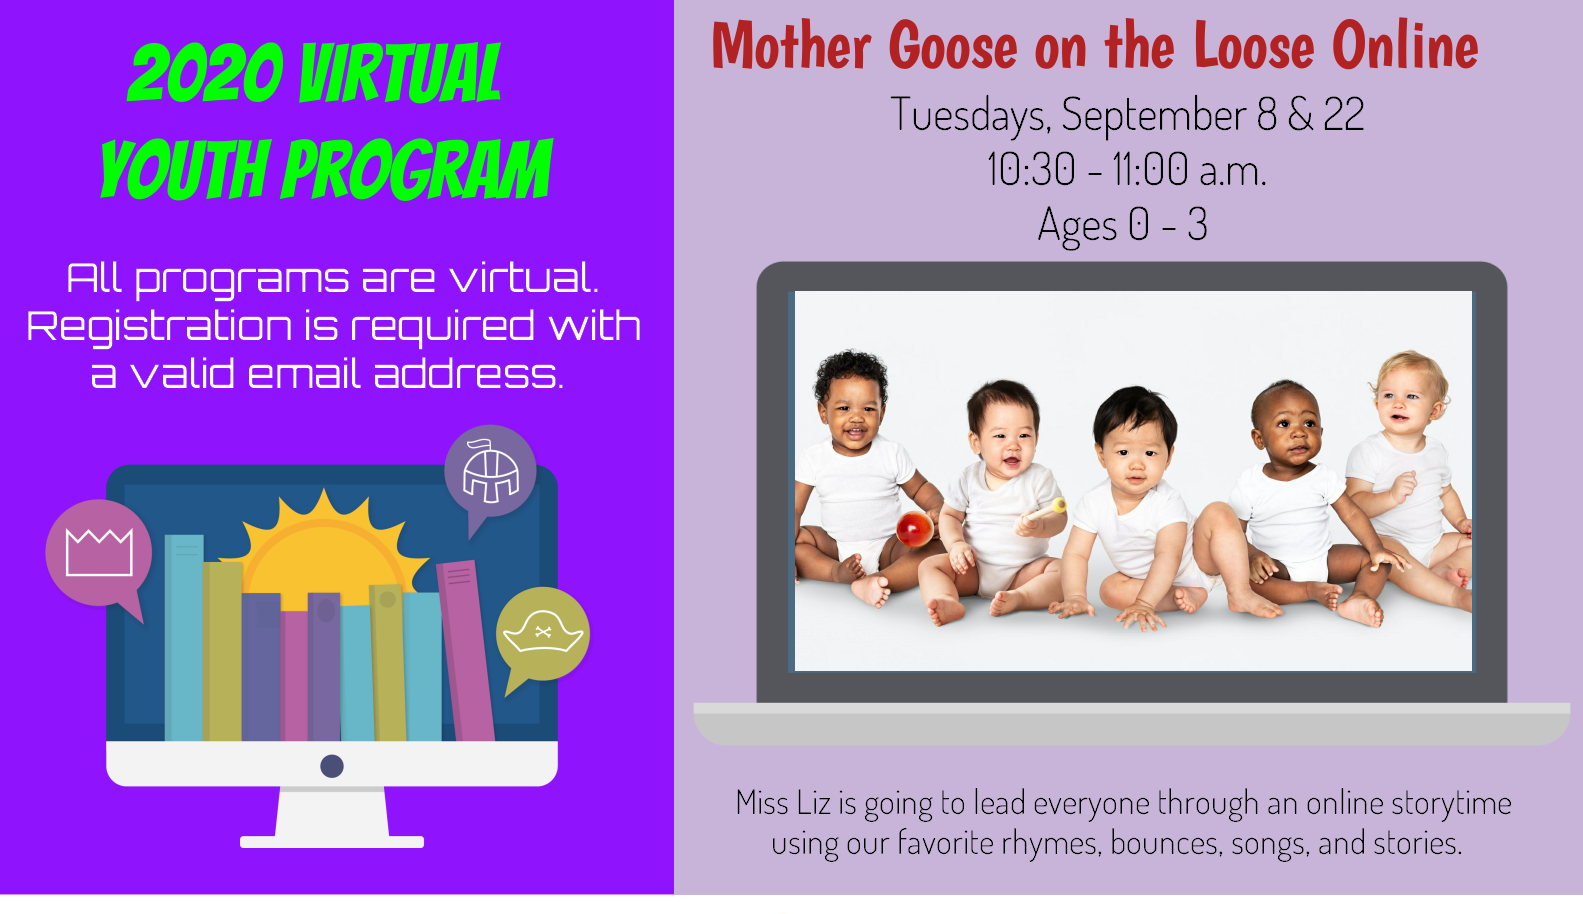 Mother Goose on the Loose Online